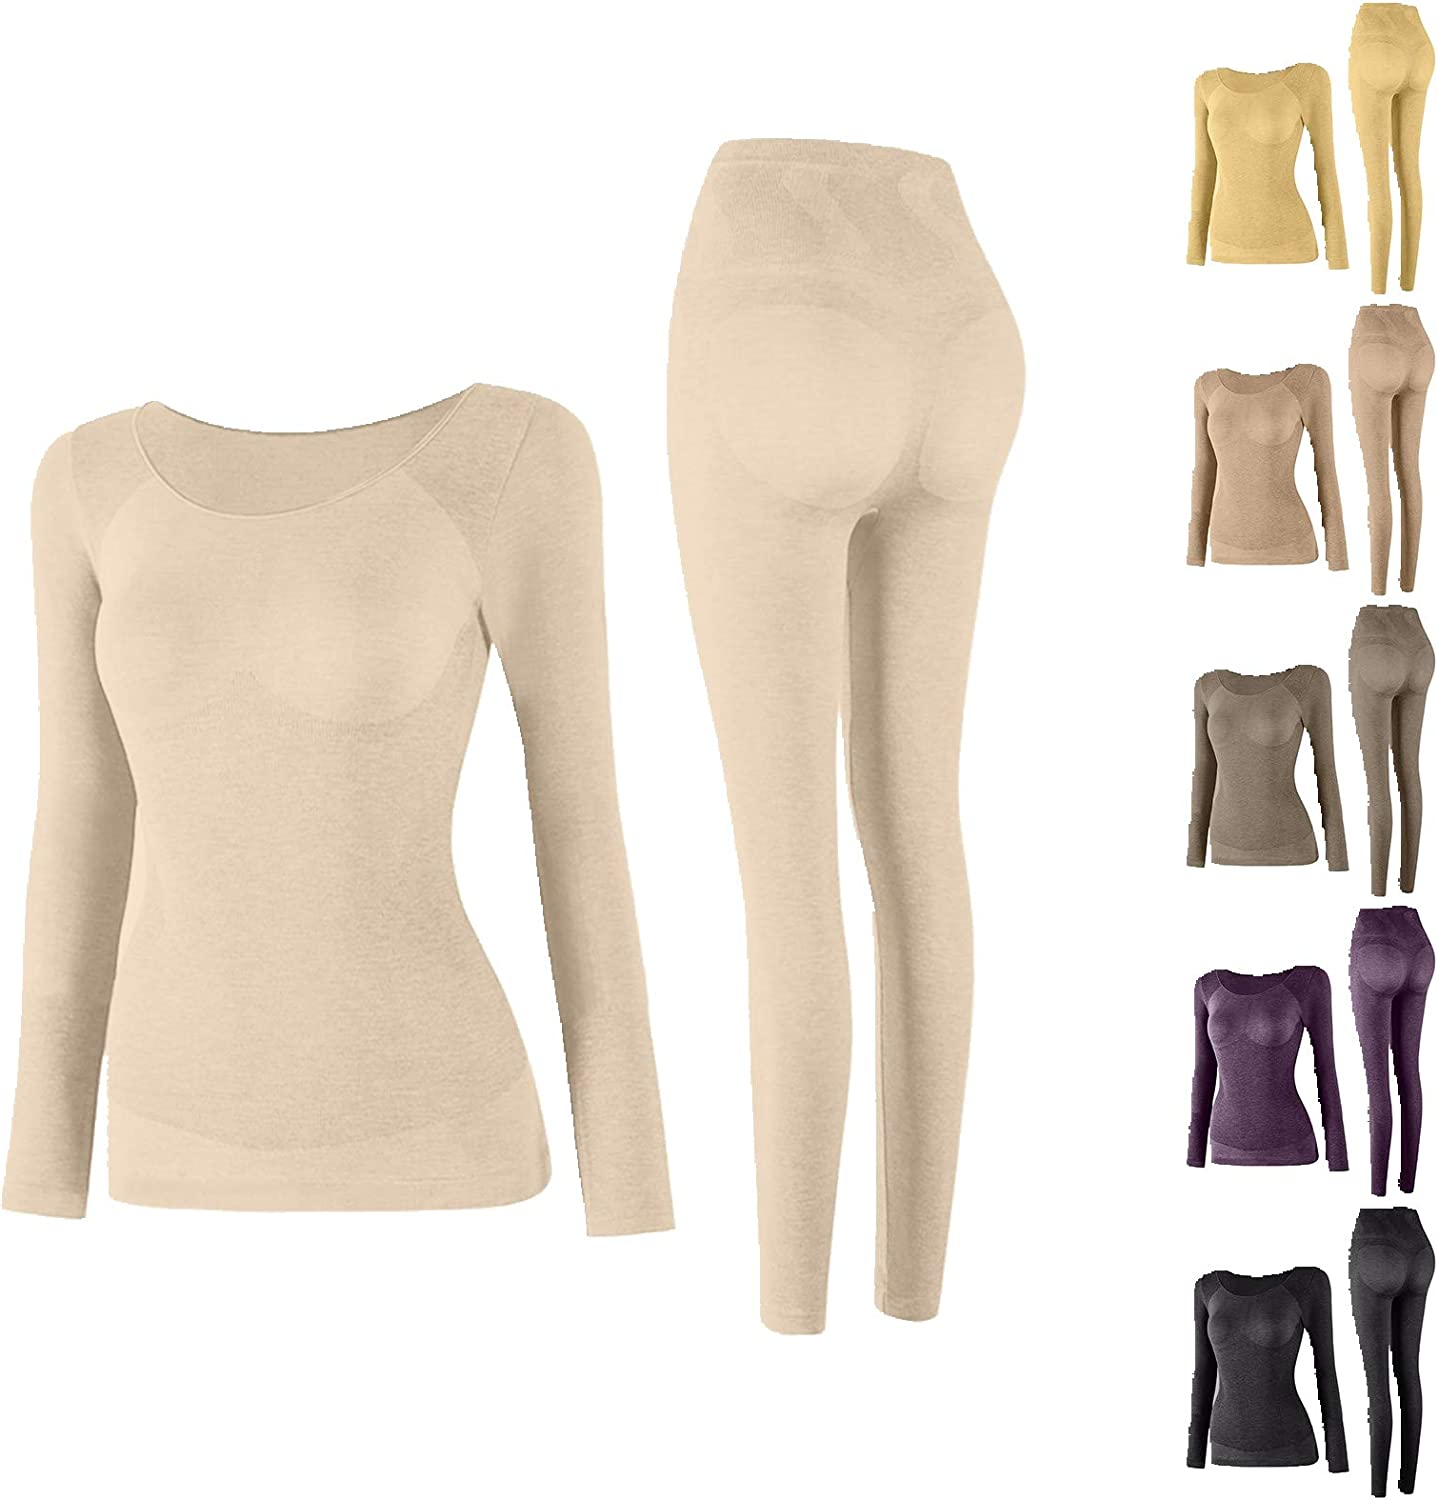 Padaleks Women Thermal Underwear Set Seamless Elastic 2 Piece Pajama Outfits Top & Leggings Thermals Inner Wear Ultra-Thin Autumn Clothes Body Shaping